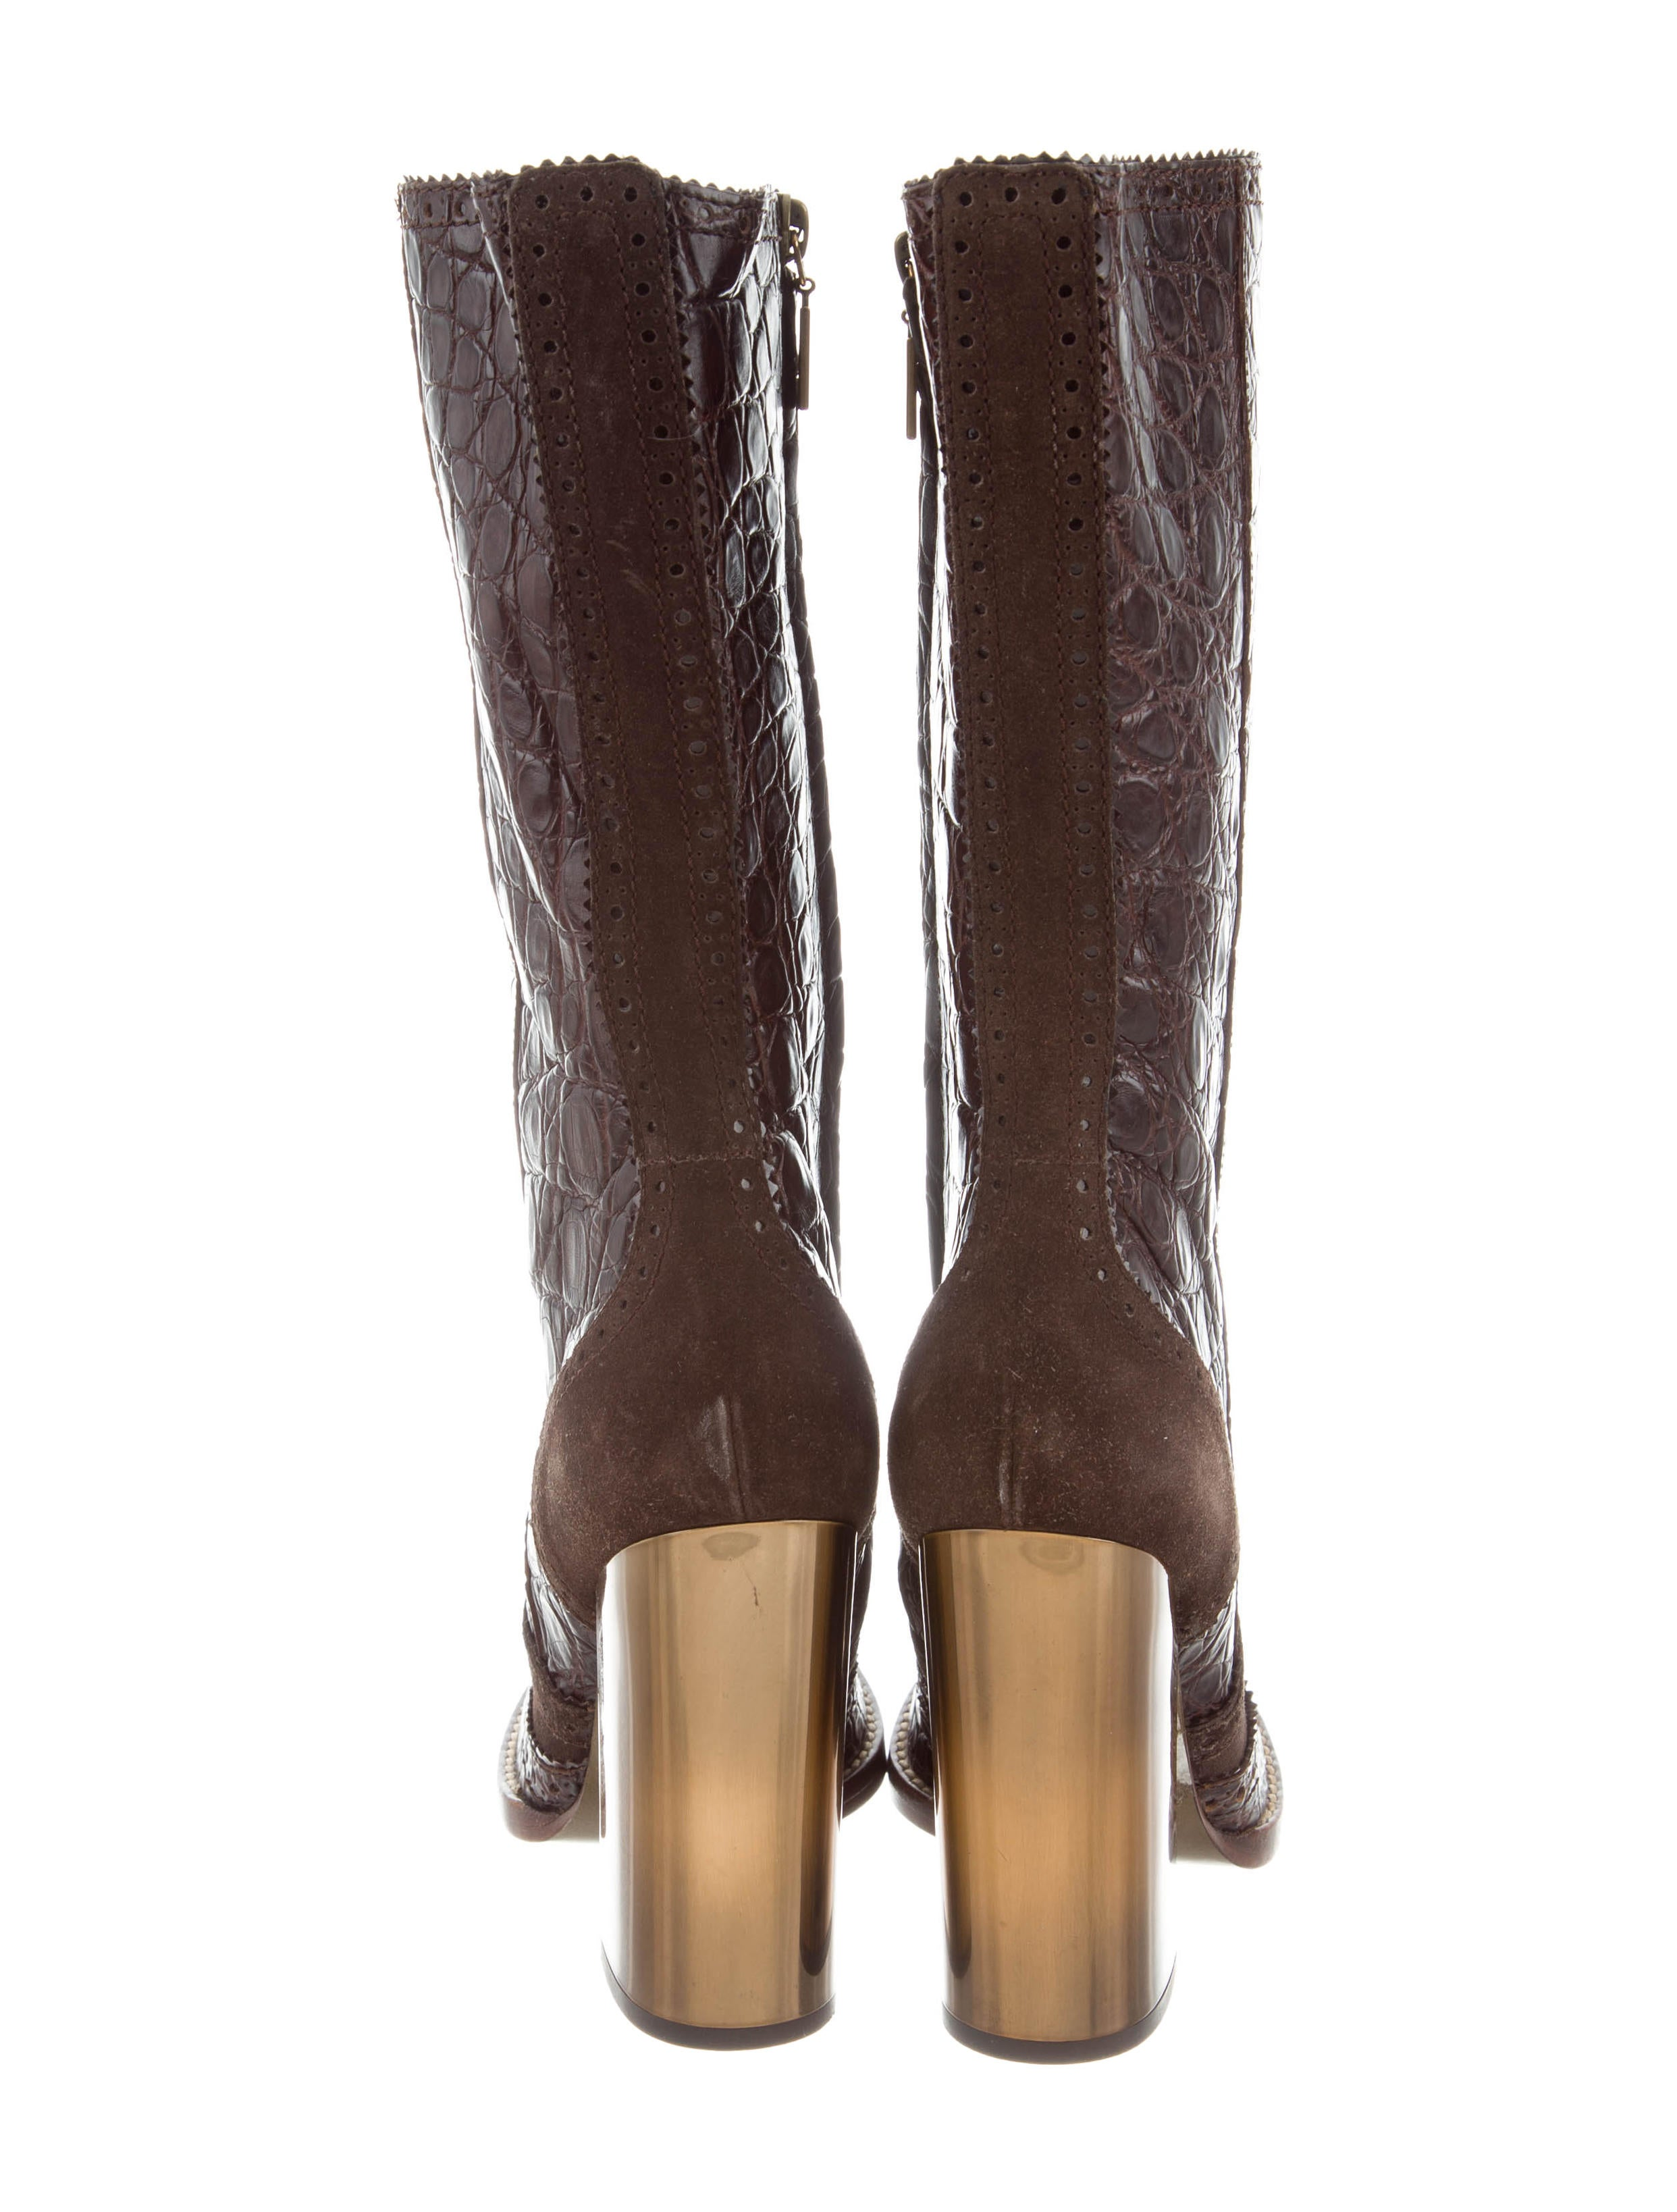 D&G Crocodile Mid-Calf Boots sale new arrival free shipping latest free shipping authentic wholesale price cheap online buy cheap best place AwuqYzQb